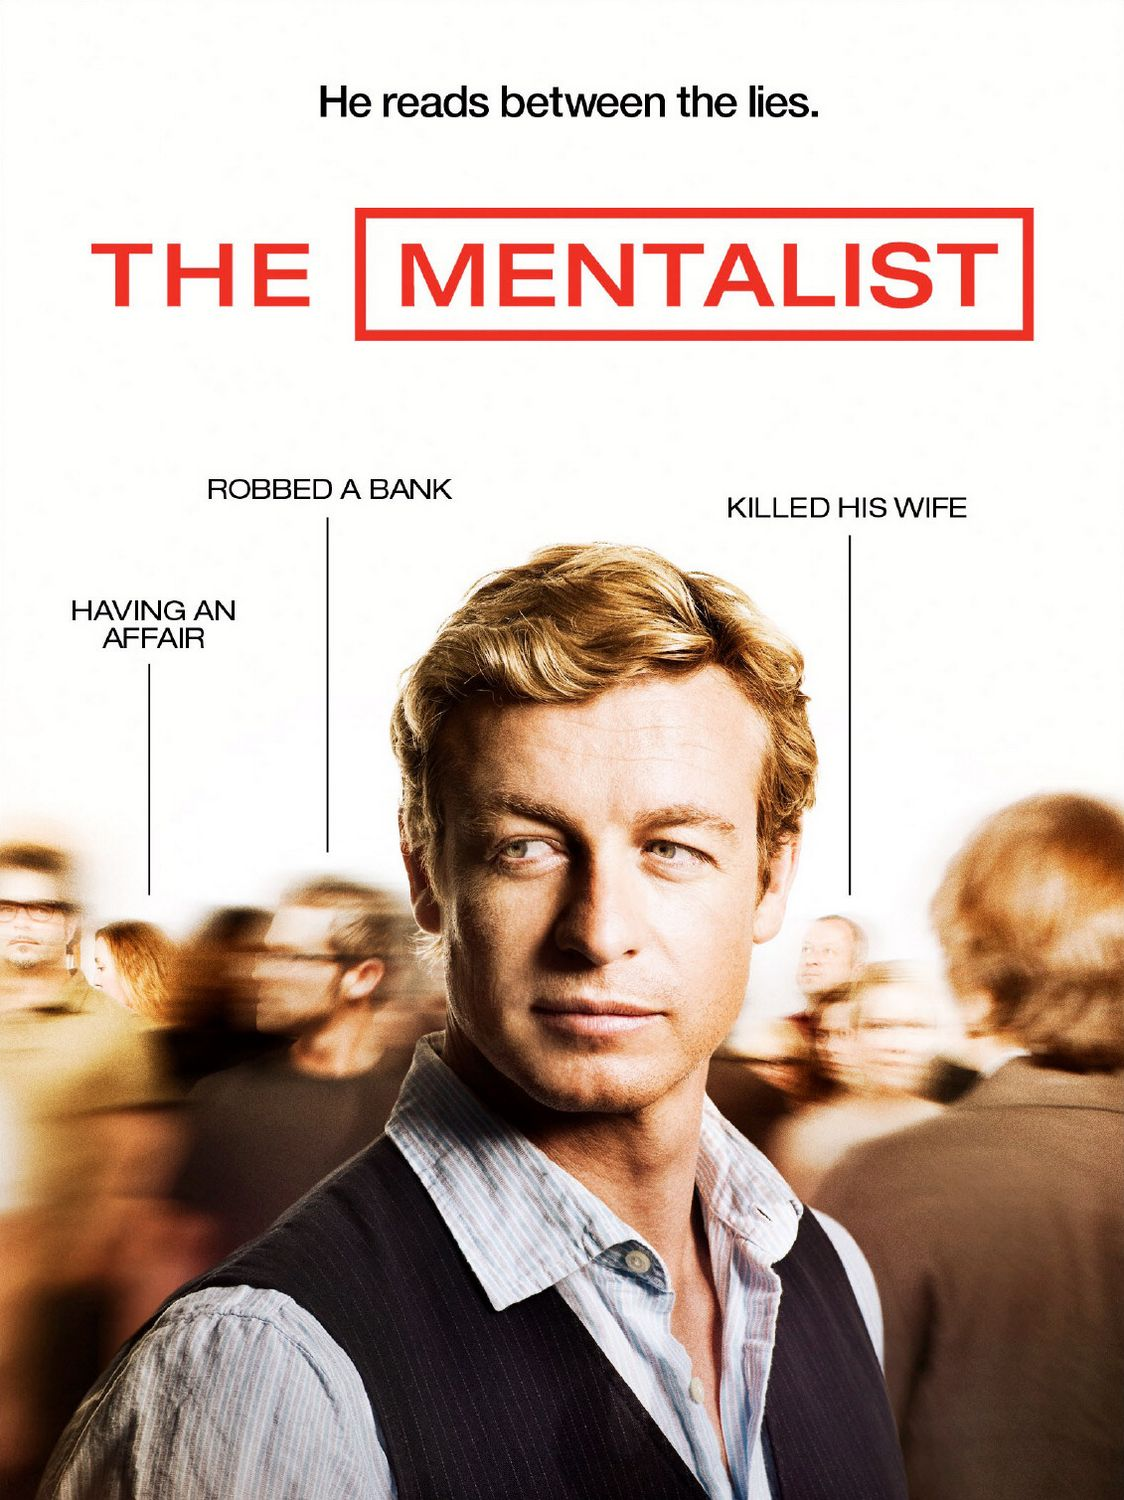 http://images1.wikia.nocookie.net/__cb20110614210123/glee/images/d/dc/Poster-the_mentalist-cbs.jpg